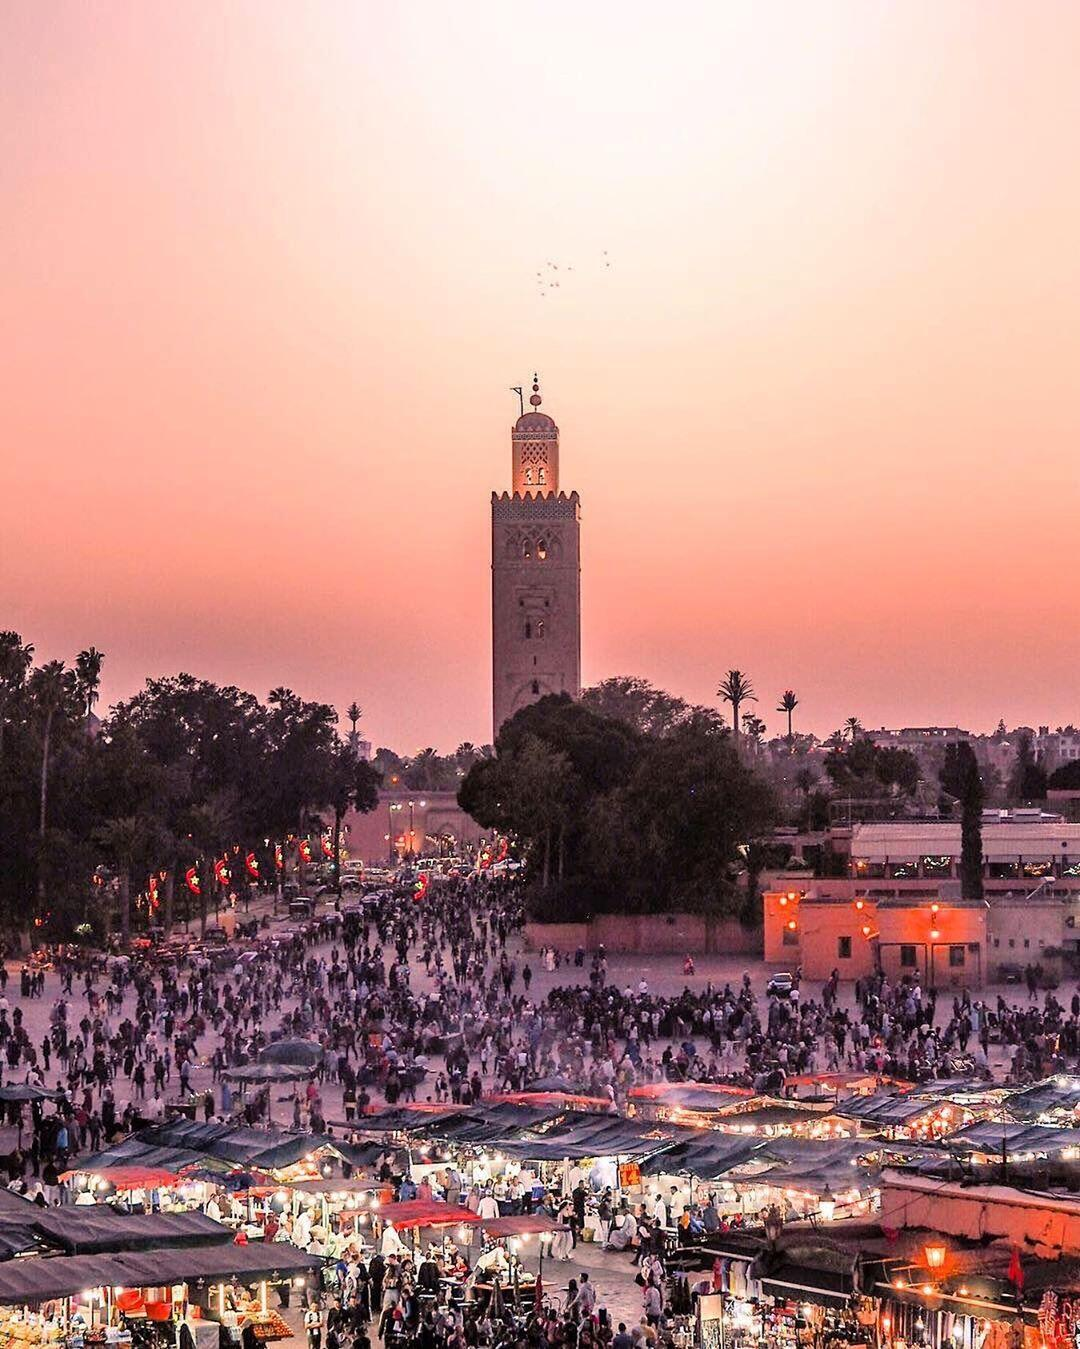 Jsquare of Marrakech, a destination we will visit with our 9 days tour itinerary in Morocco